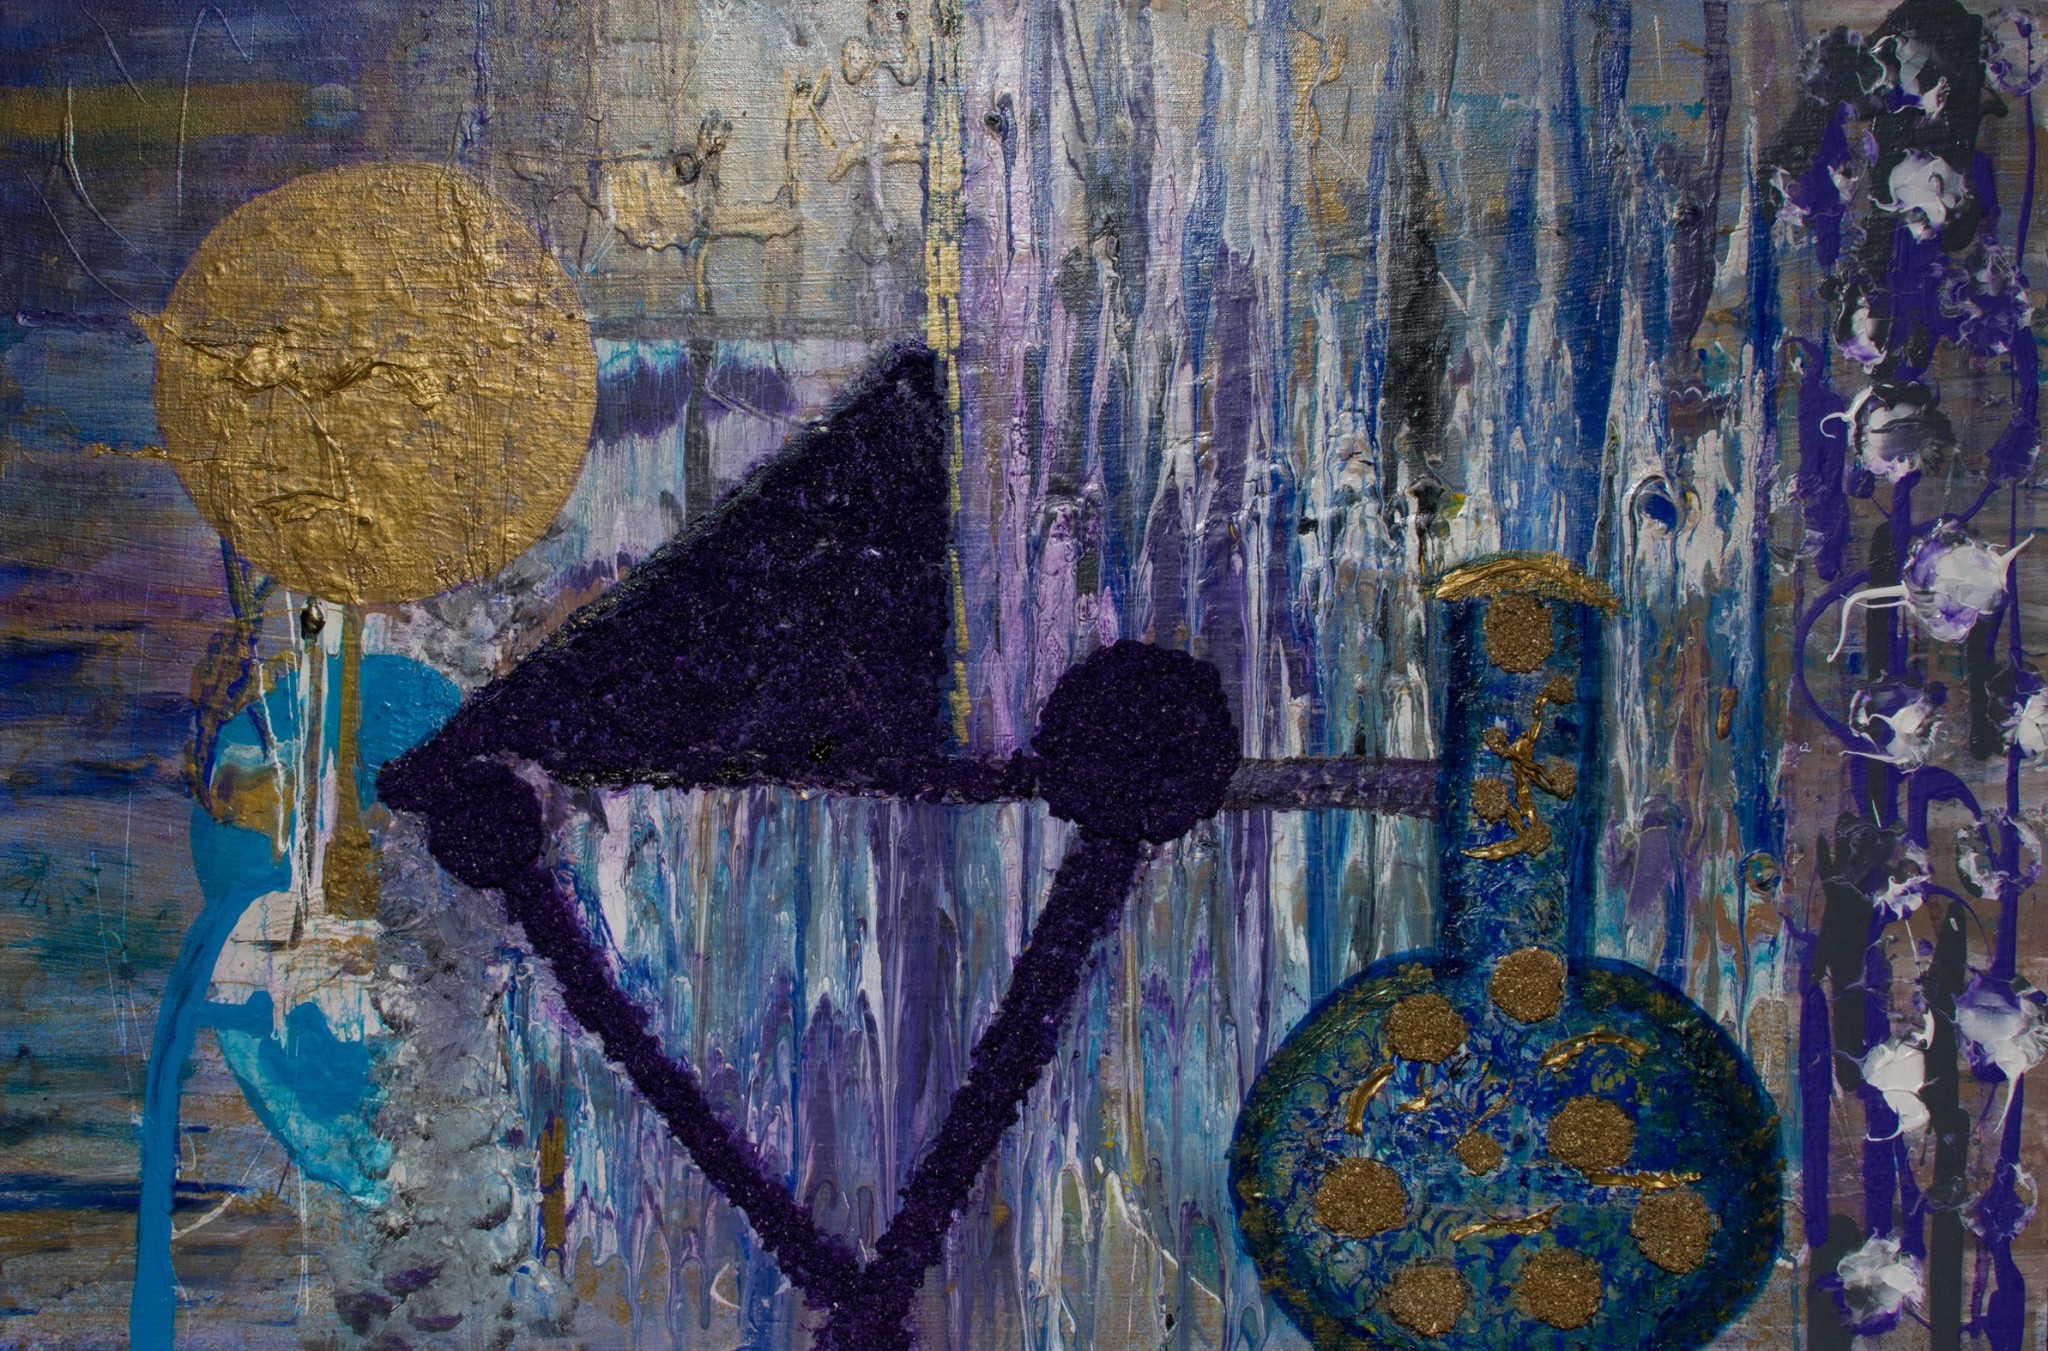 THE ALCHEMIST 36X24 MIX MEDIA